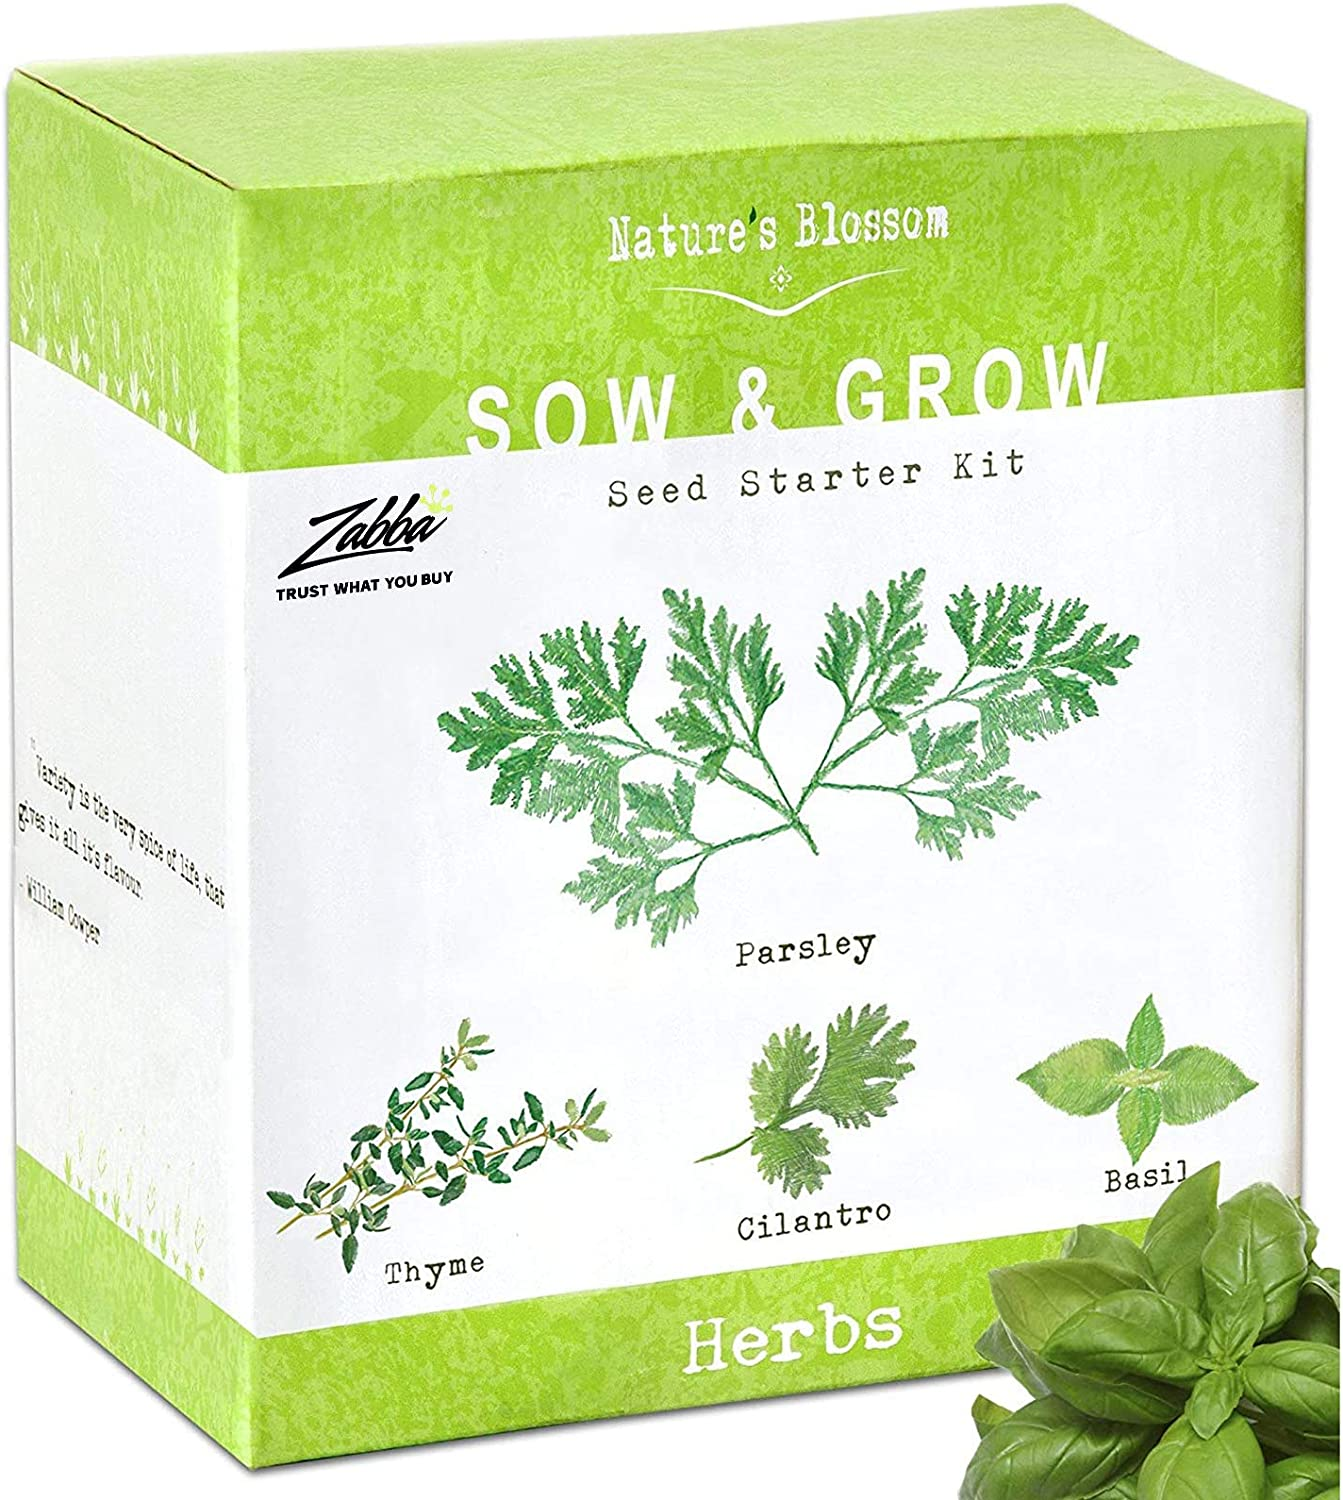 Nature S Blossom Indoor Herb Garden Starter Kit With 5 Organic Herbs To Grow From Seed Complete Diy Gardeners Growing Set With Italian Basil Cilantro Coriander Thyme Sage And Parsley Plant Seeds Amazon Ca